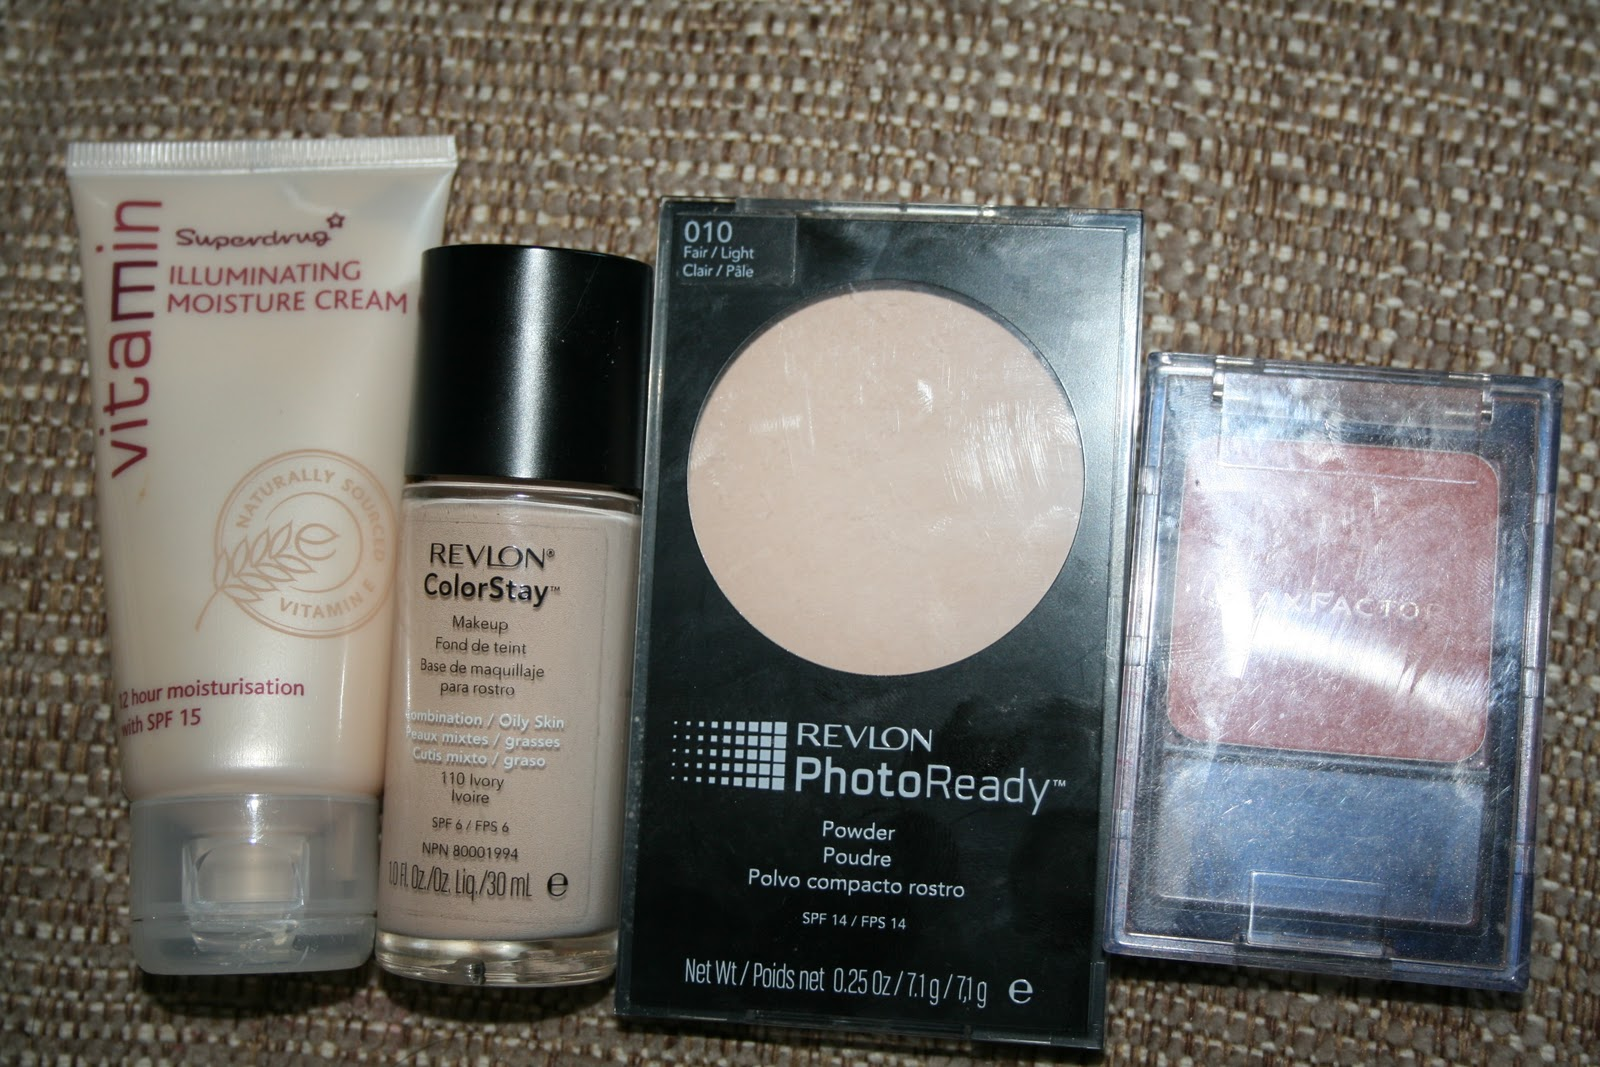 Blogger Of A Makeup Addict My Basic Look Ok From Left To Right Is Superdrug Vitamin E Illuminating Moisture Cream With Spf 15 Revlon Colorstay Liquid Foundation For Combination Oily Skin In 110